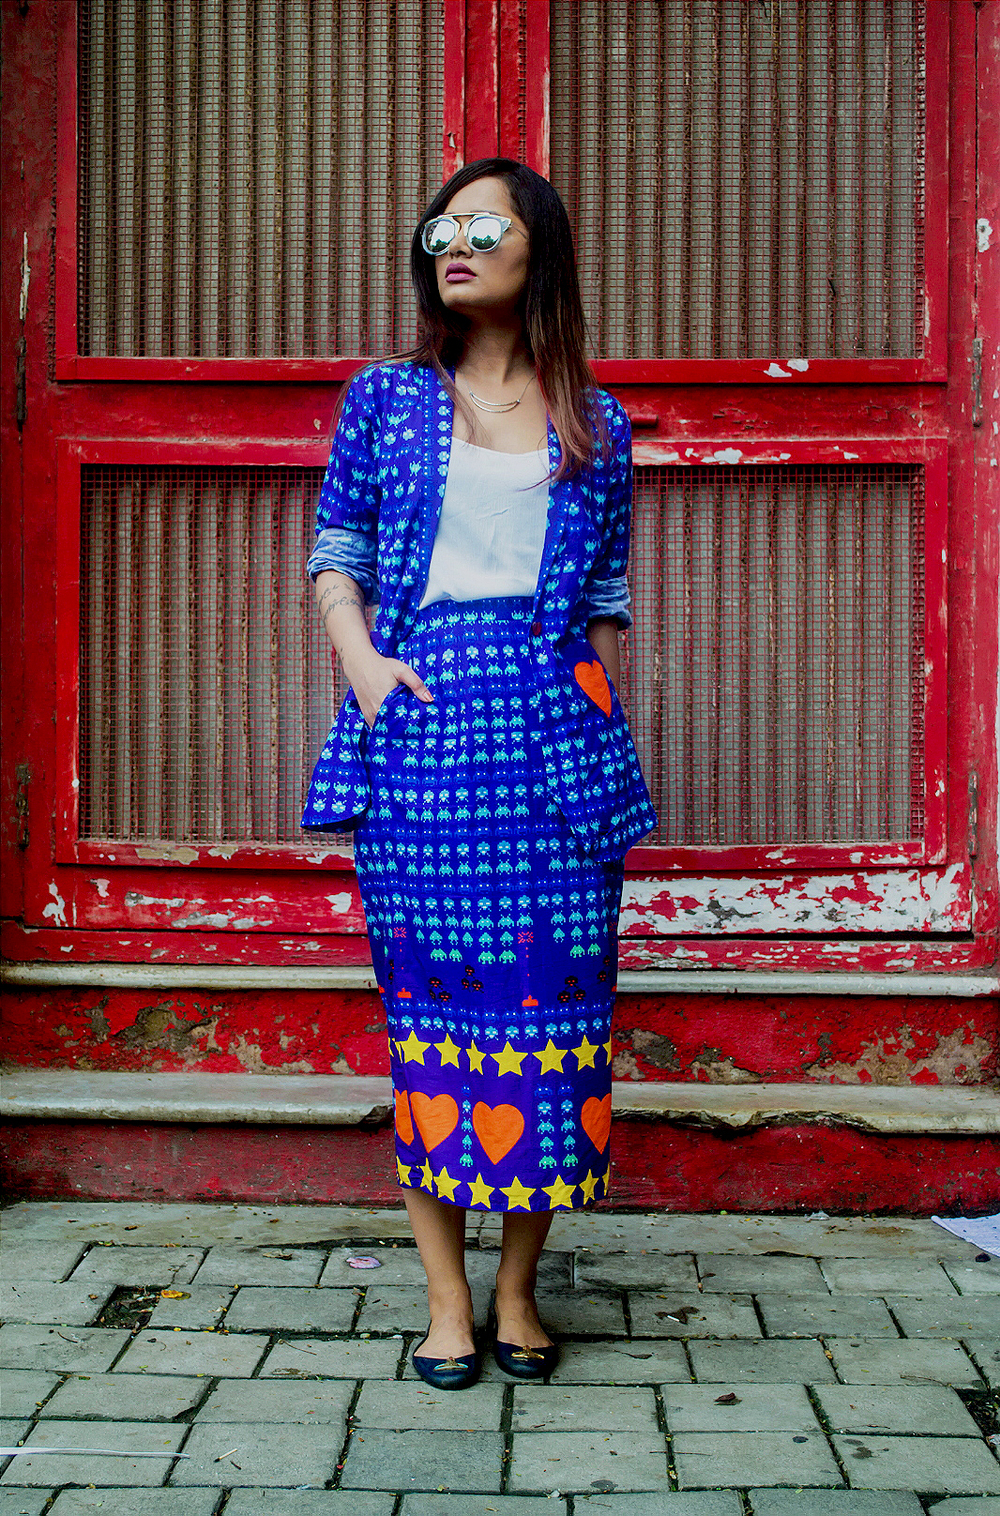 The-Chic-Armoire-by-Nidhi-Kunder-Nakita-Singh-2